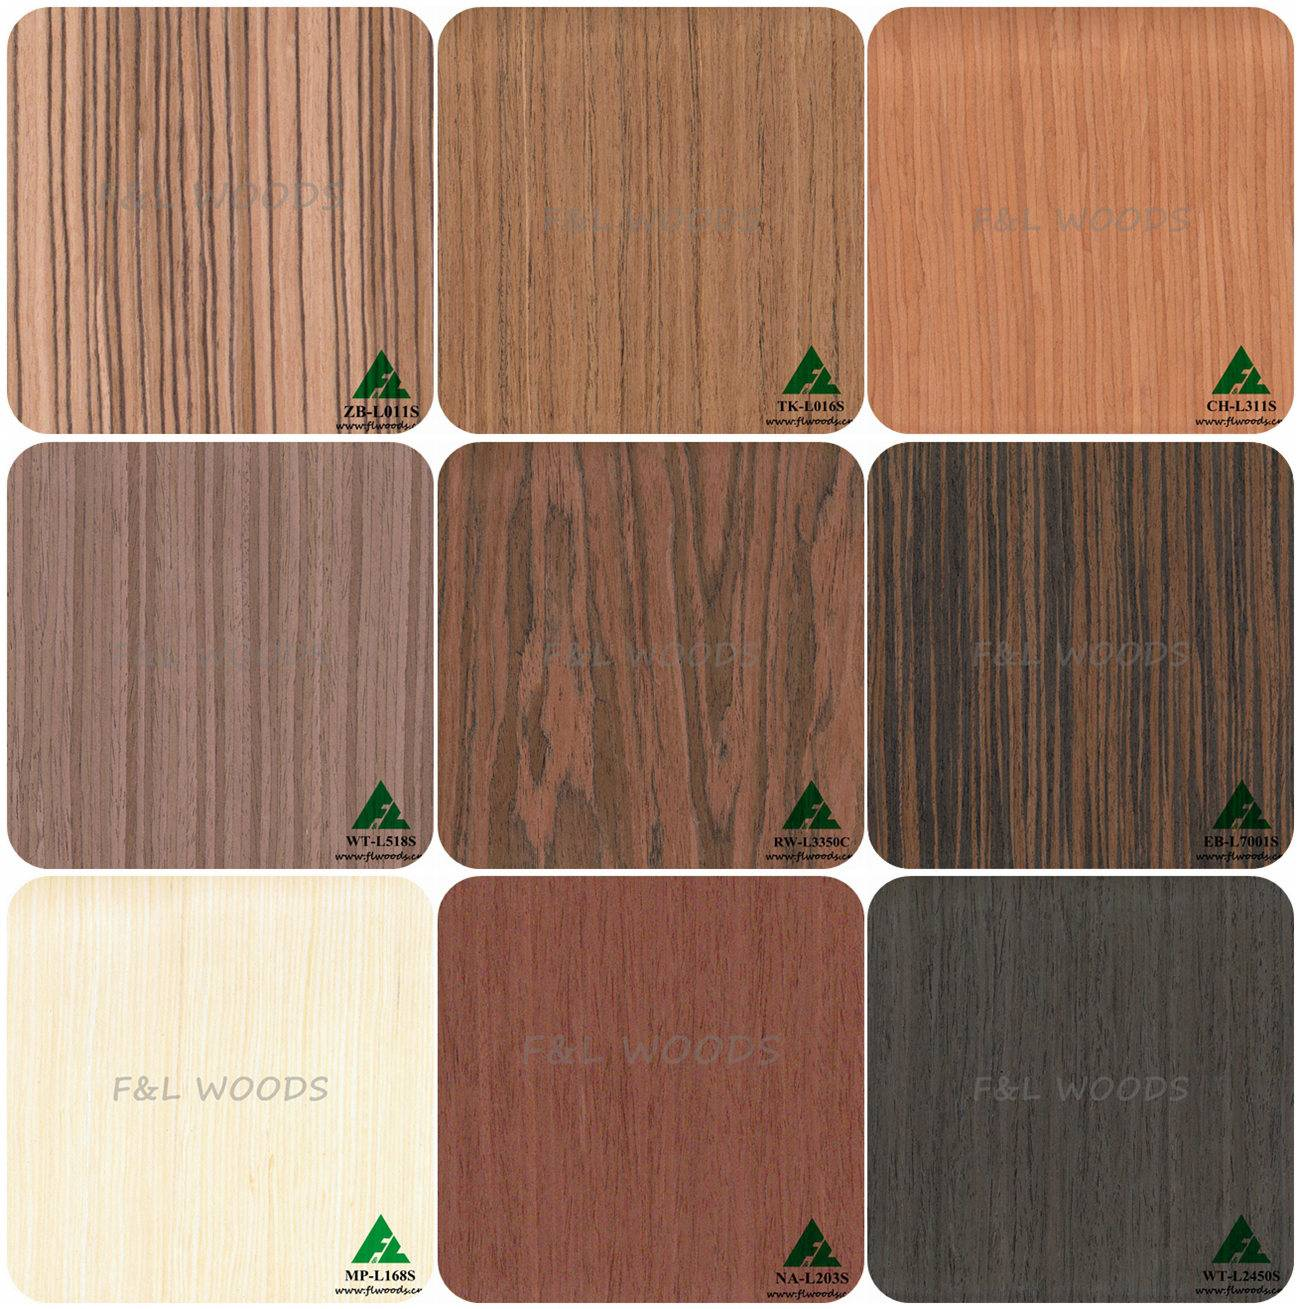 engineered veneer /reconstituted veneer/recon veneer/veneer fineline /oak veneer